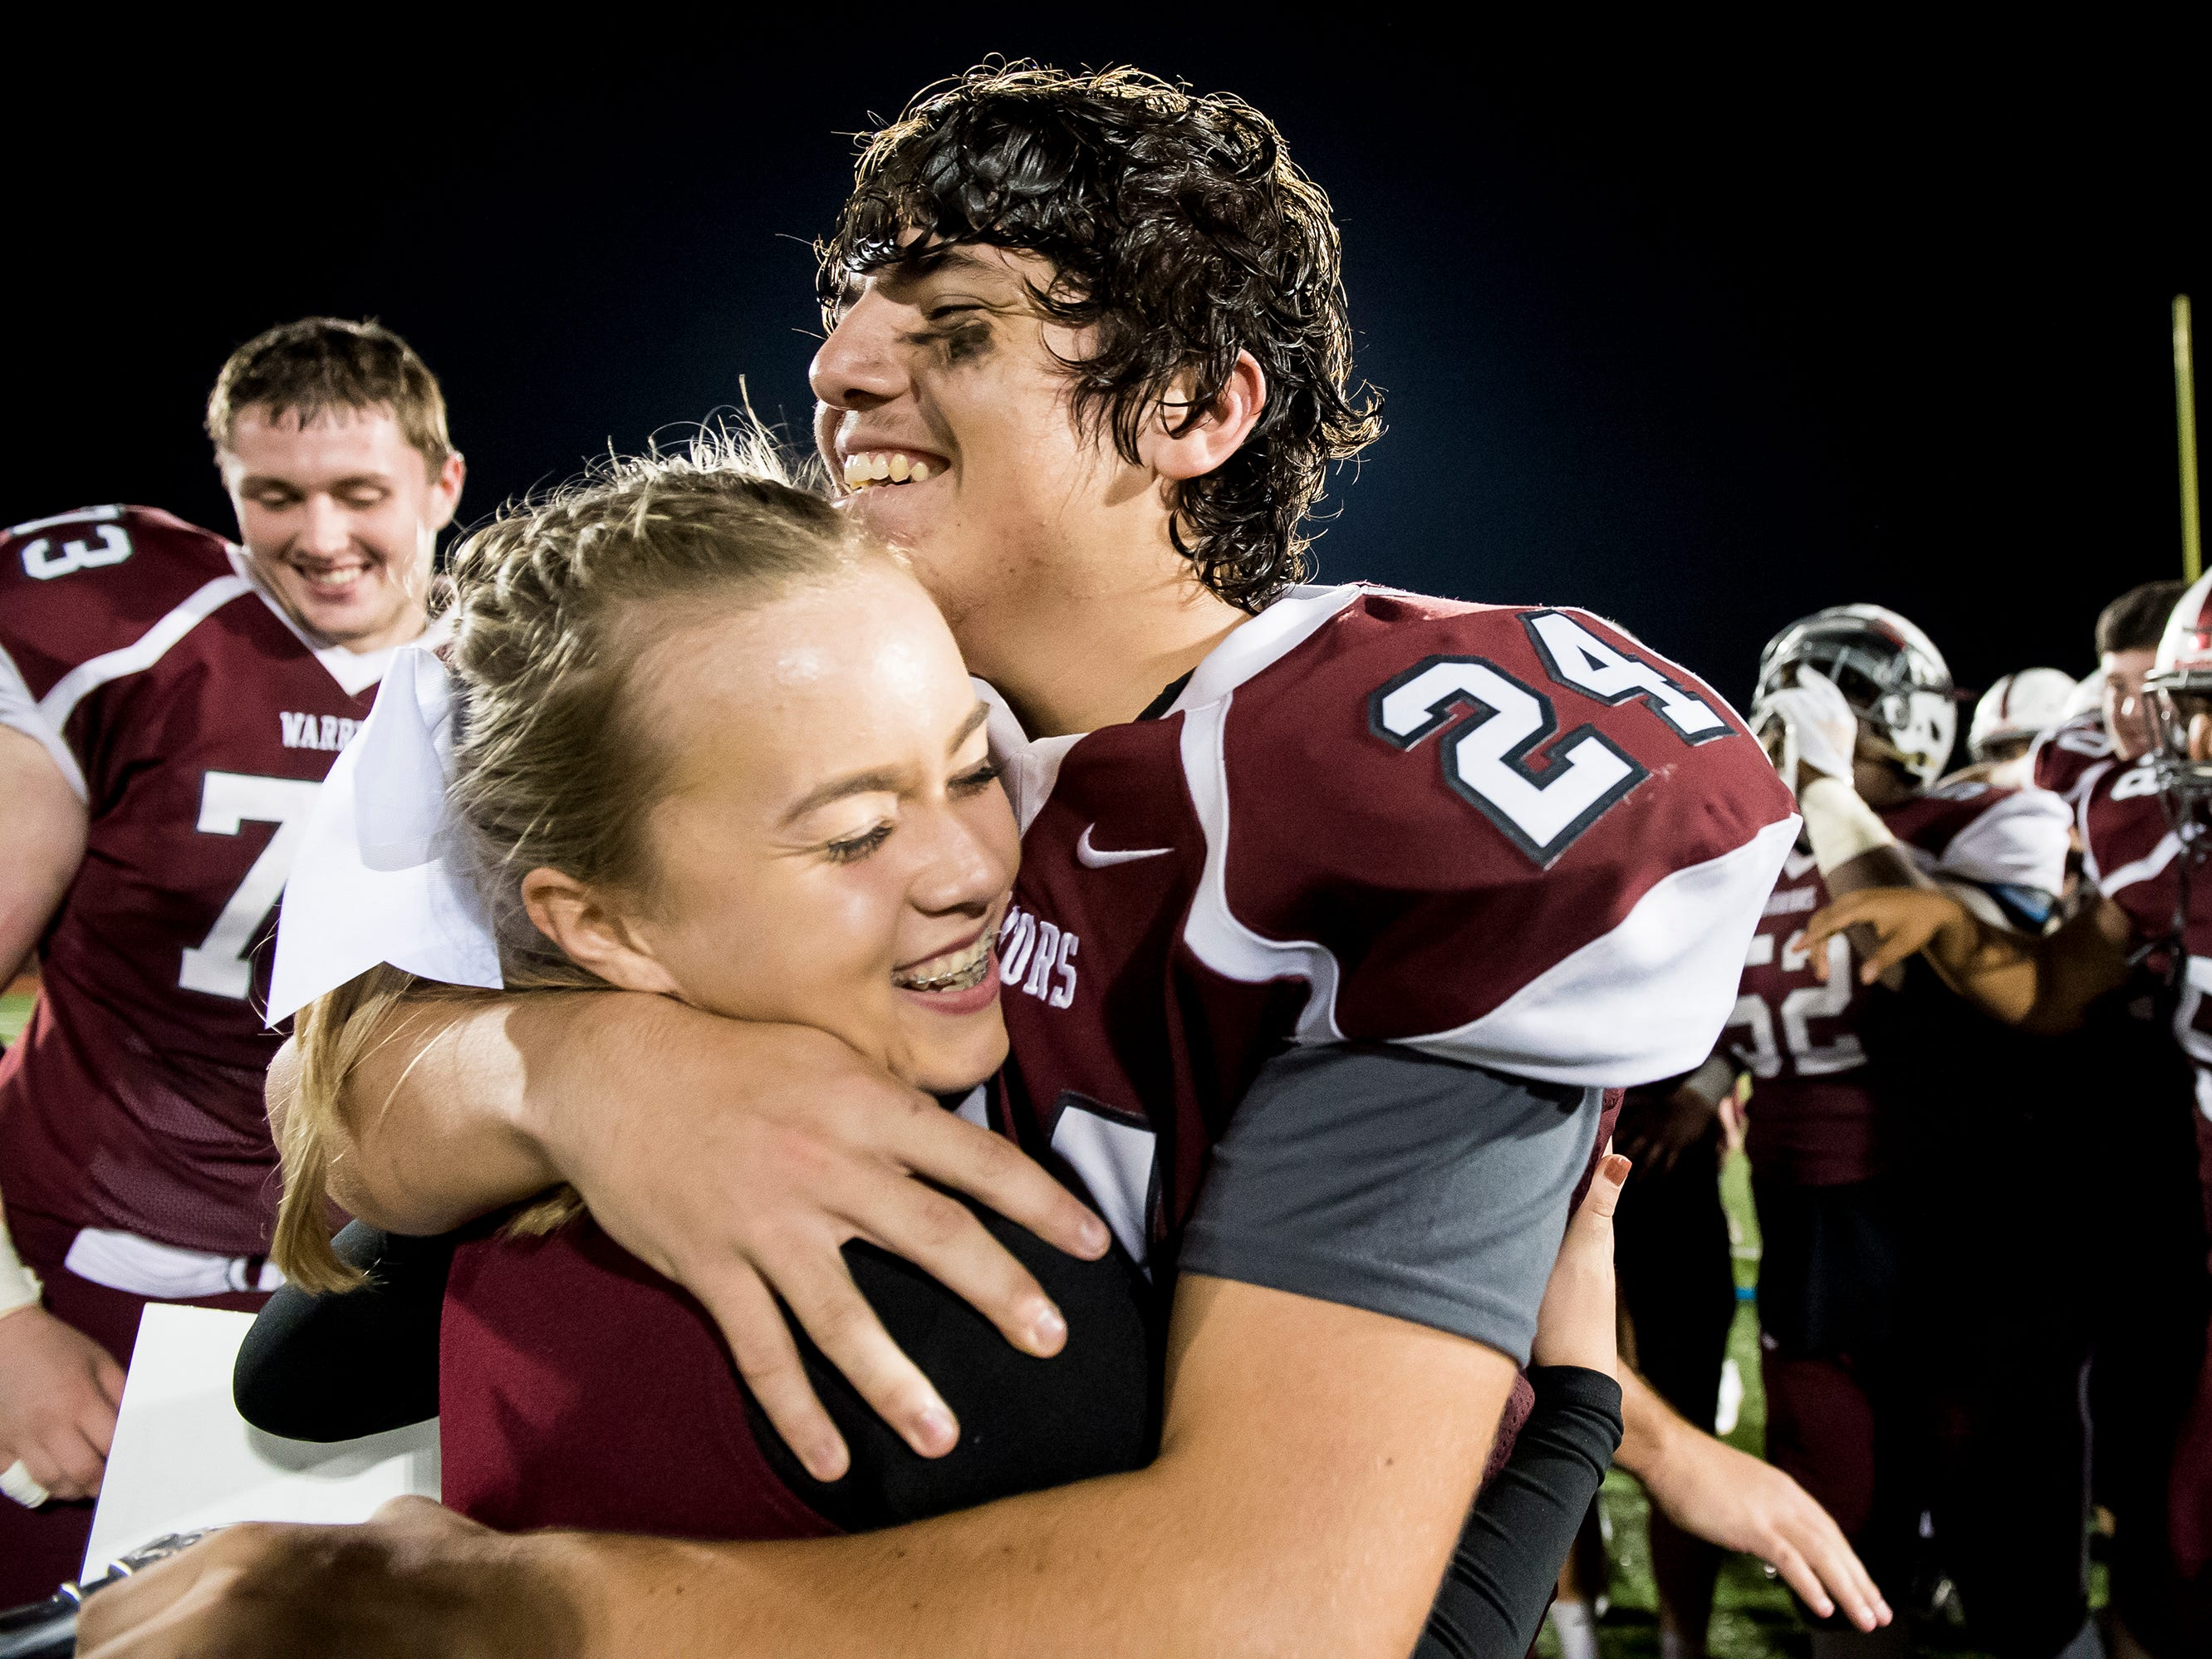 Gettysburg football player Alvaro Sanchez embraces his girlfriend, Veronica Yingling, after she surprised him with a homecoming proposal follwing a game against Eastern York on September 28, 2018.